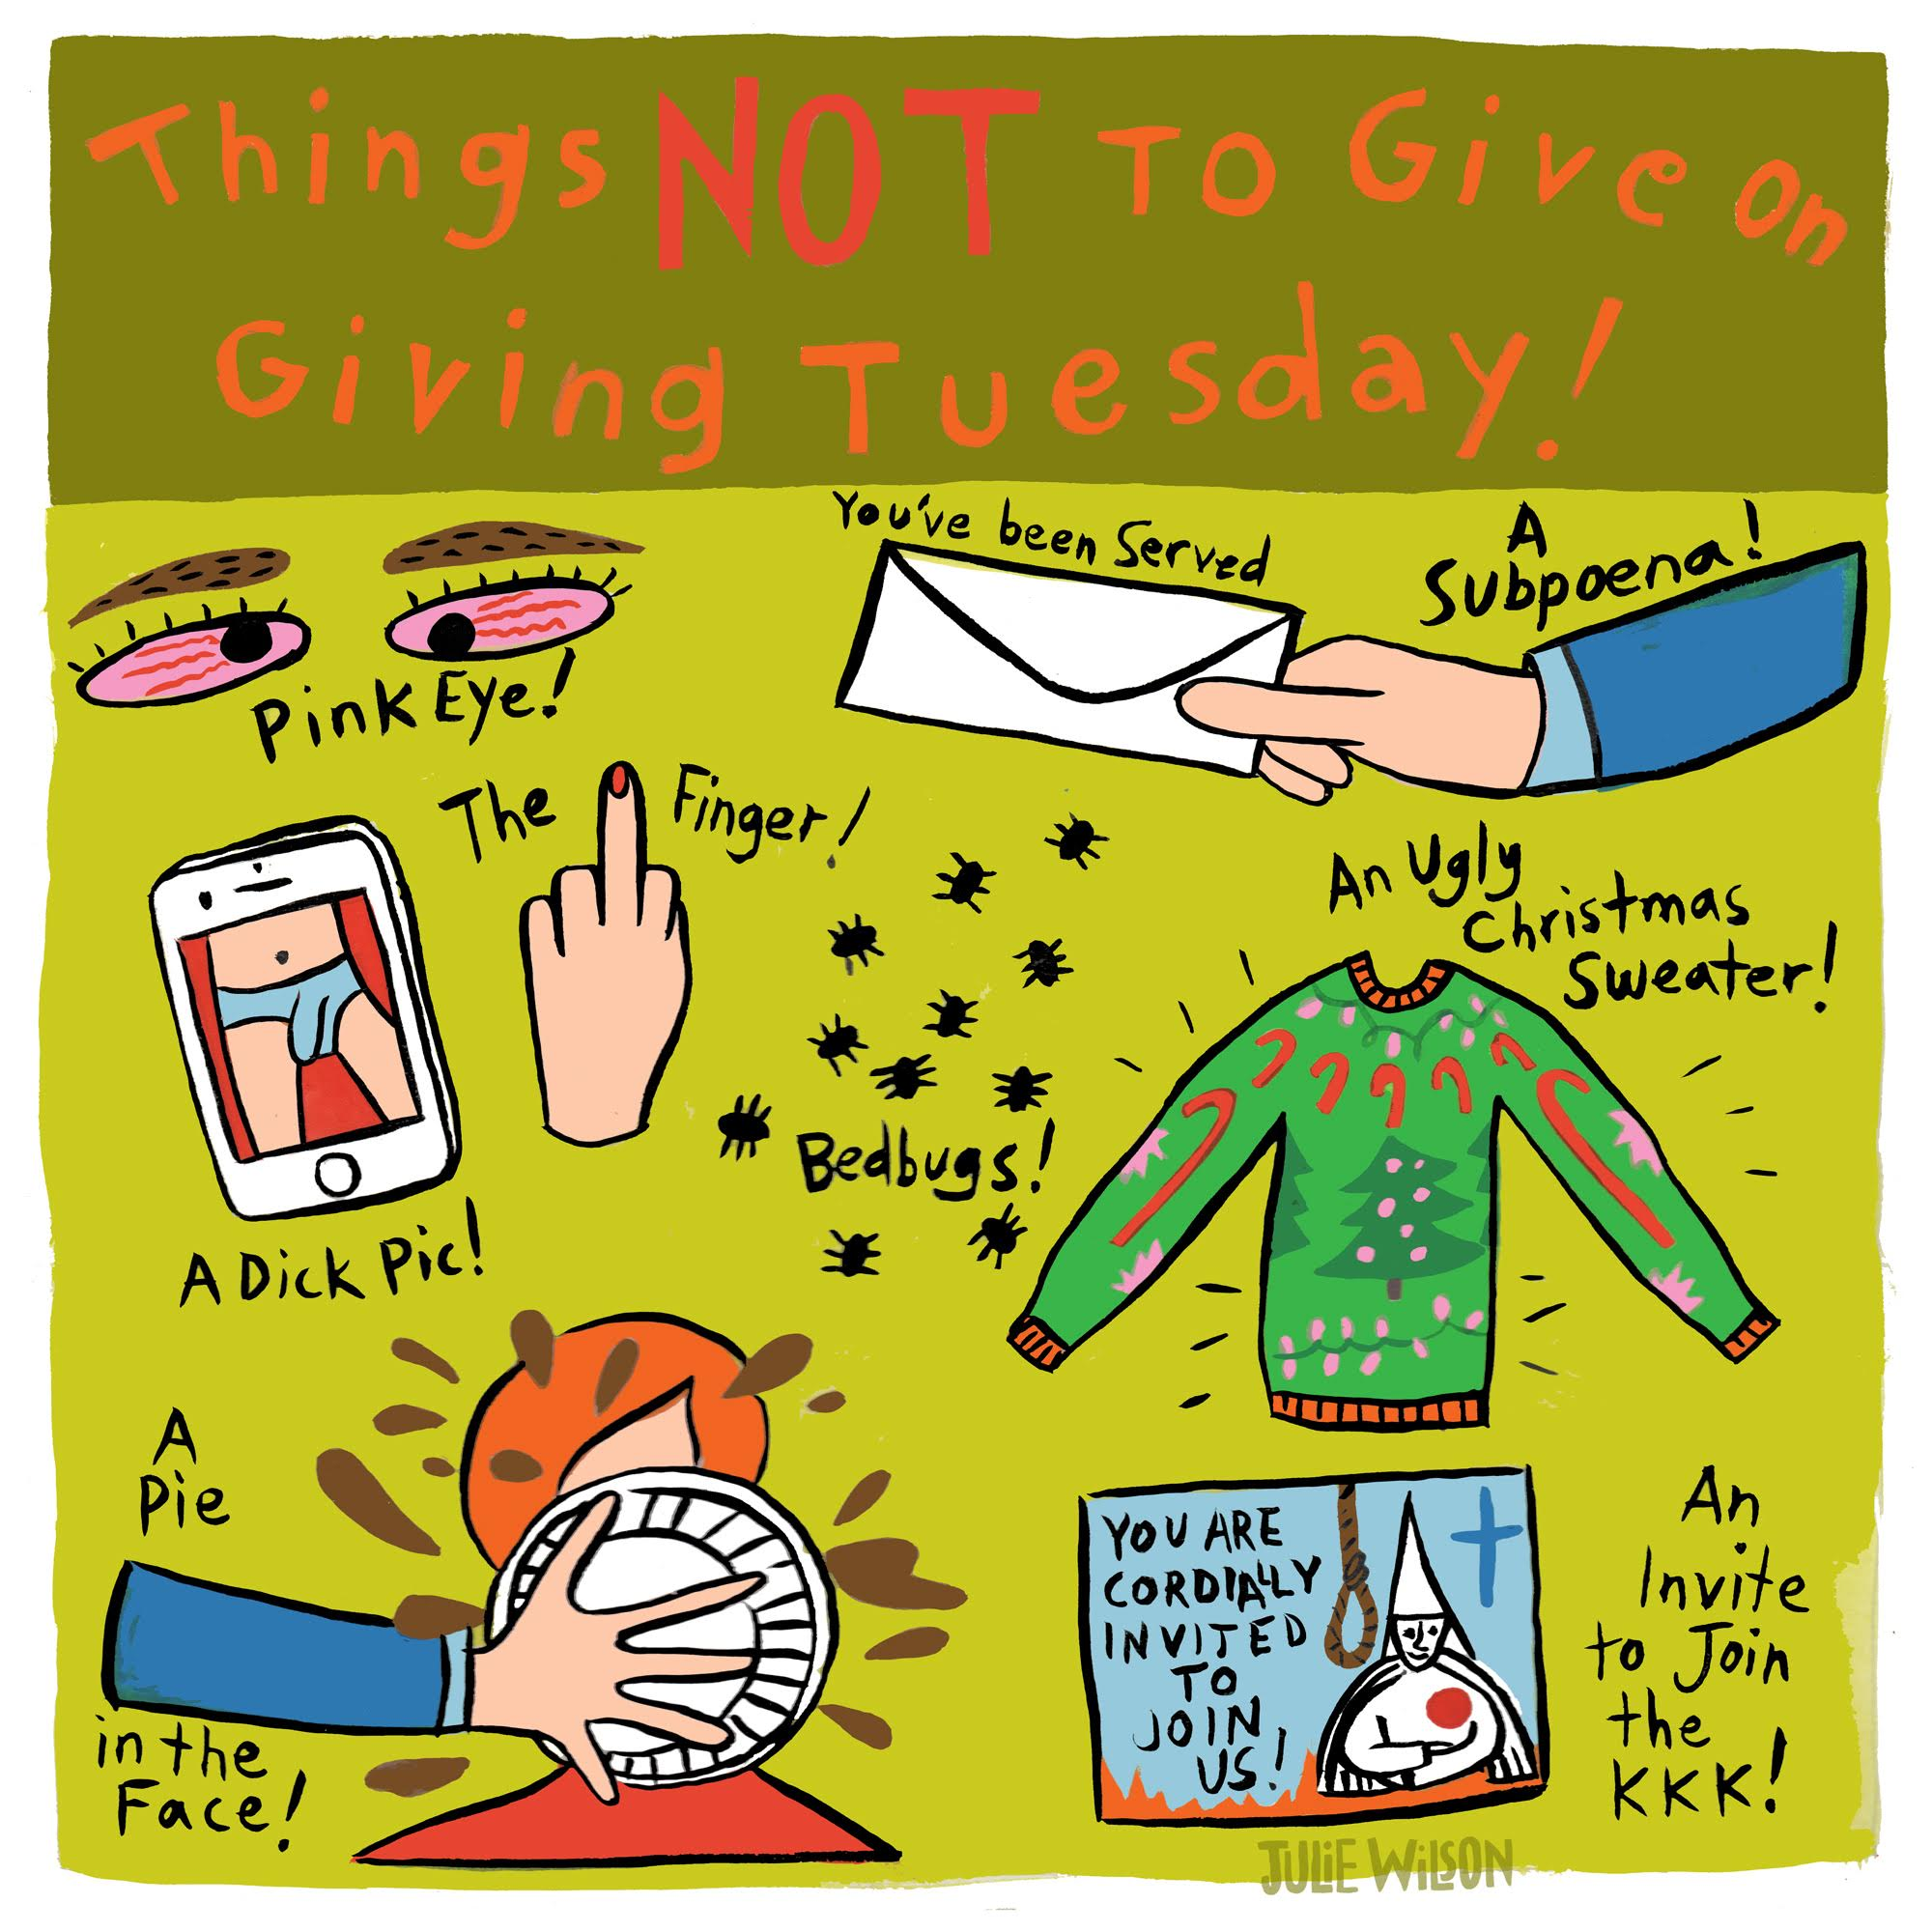 11-29_giving_tuesday.jpg